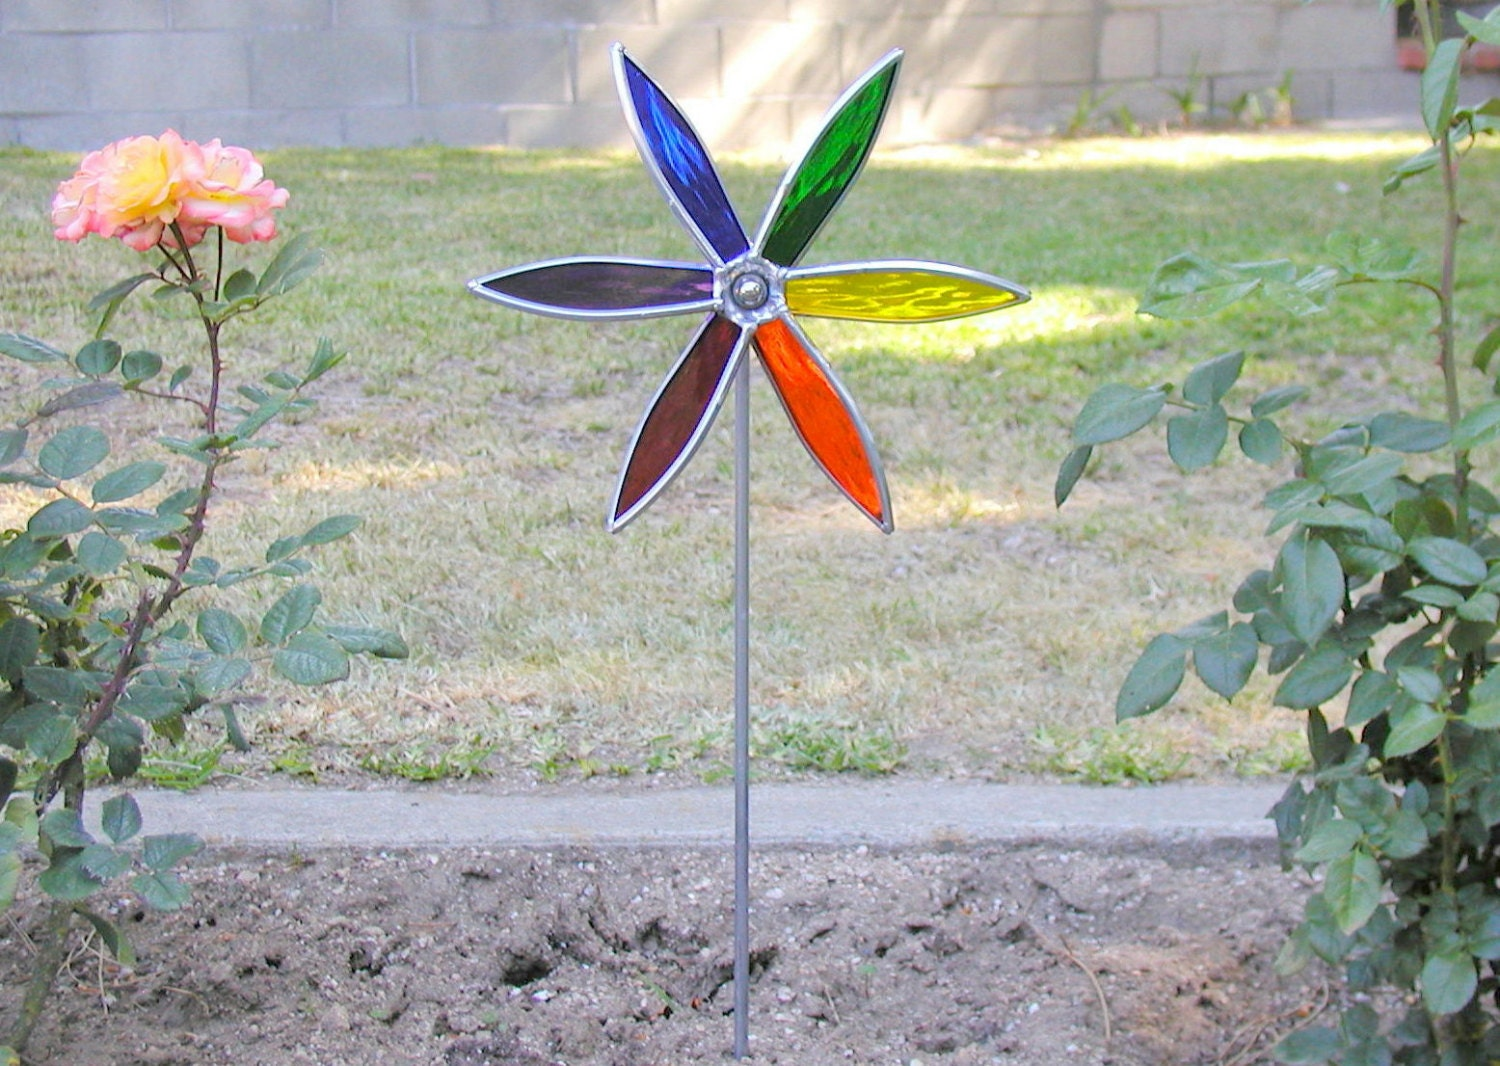 Spinning garden decorations - Stained Glass Spinning Garden Pinwheel Rainbow